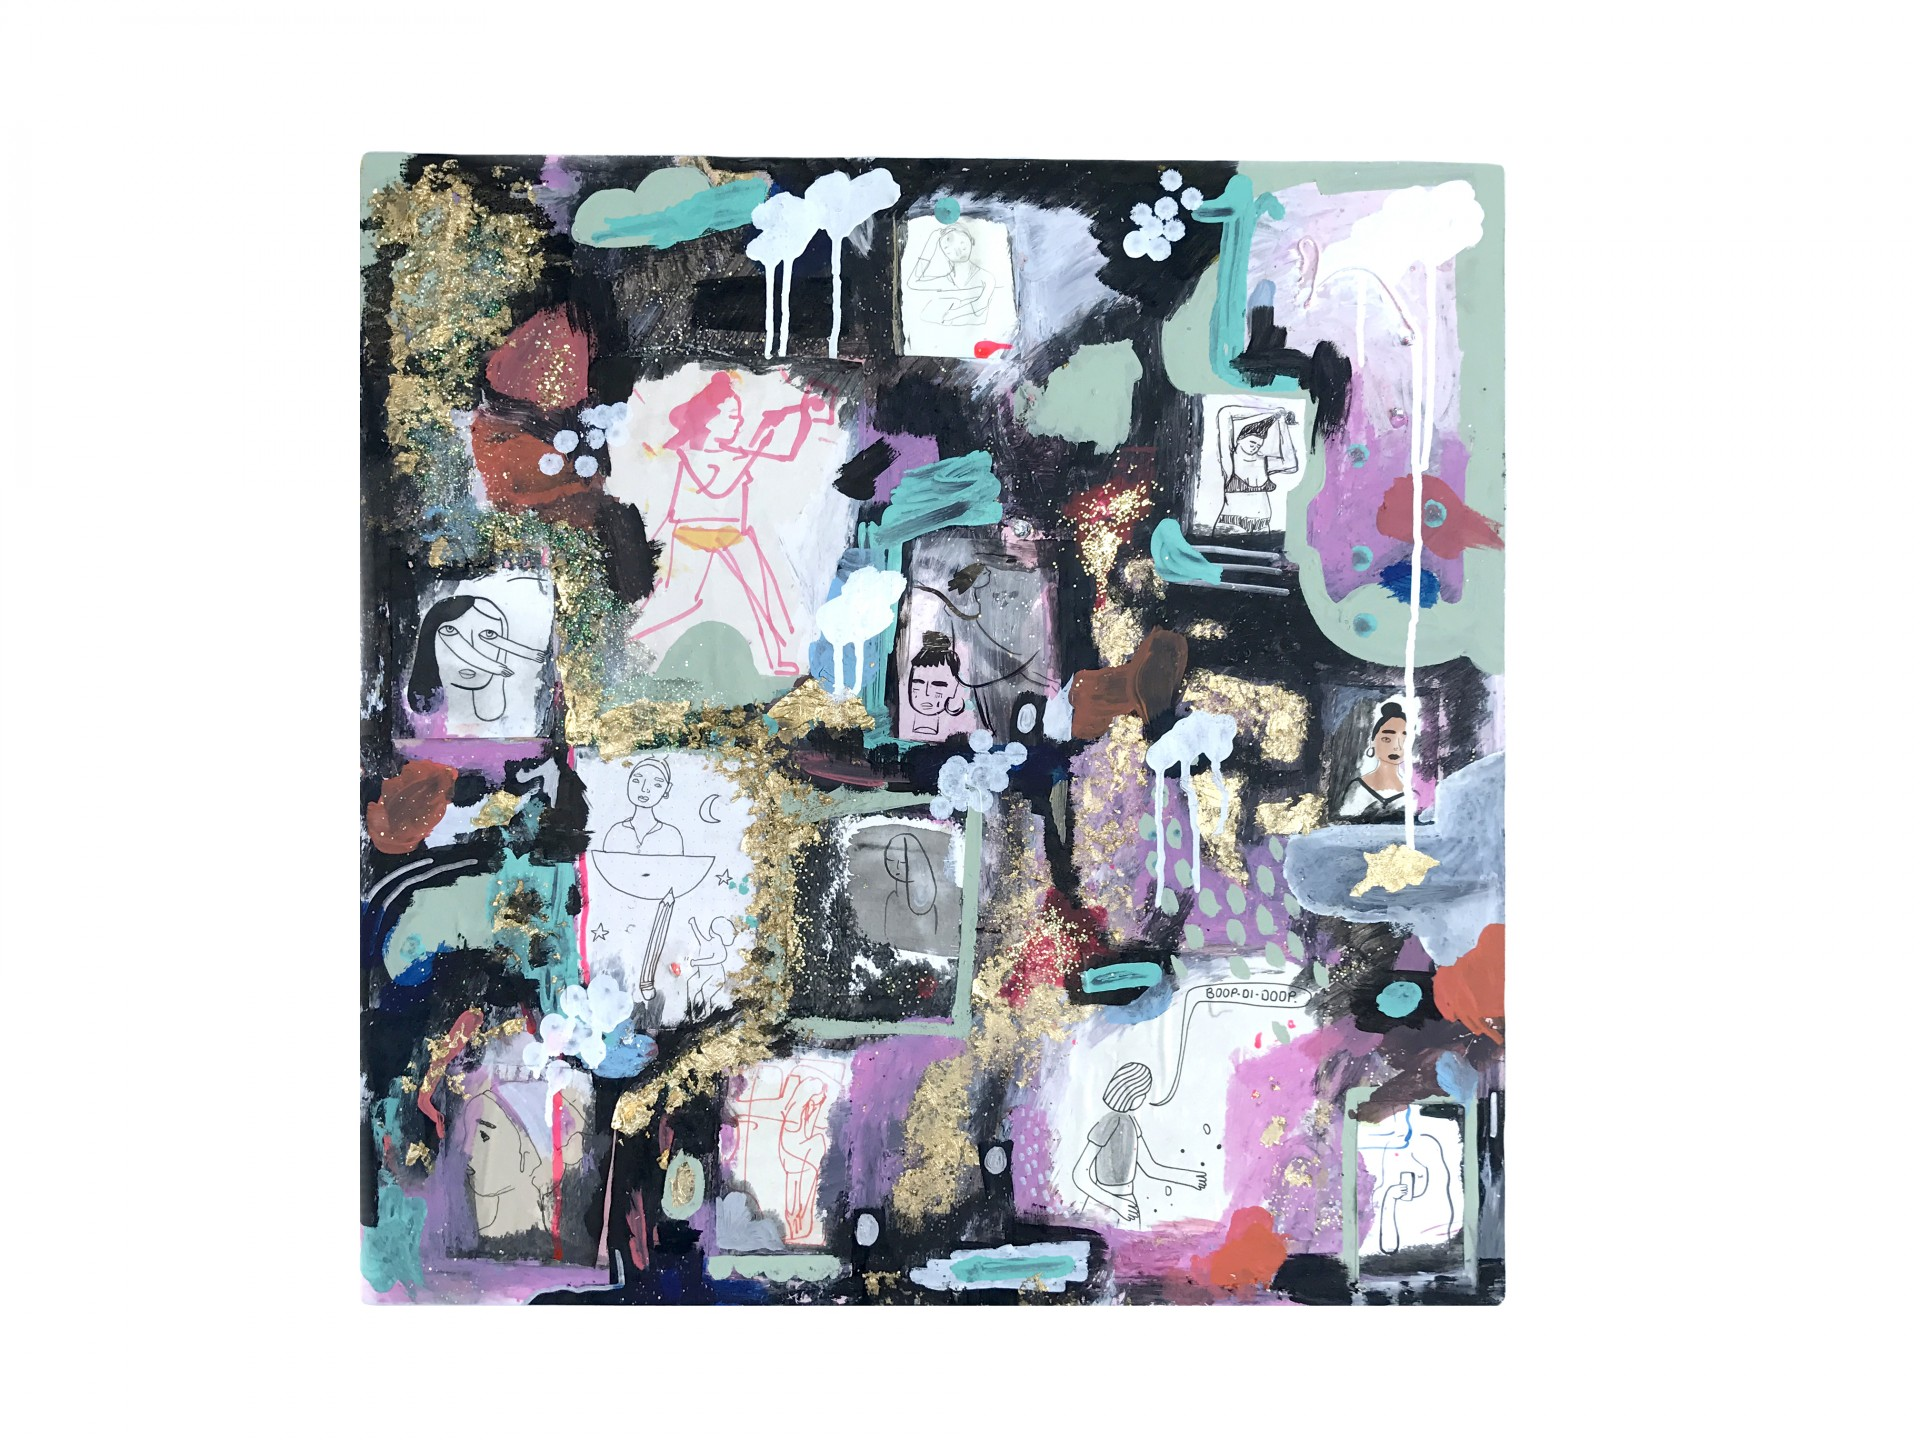 Square painting with collaged self portraits on top. Painting includes black, pink and turquoise paint.